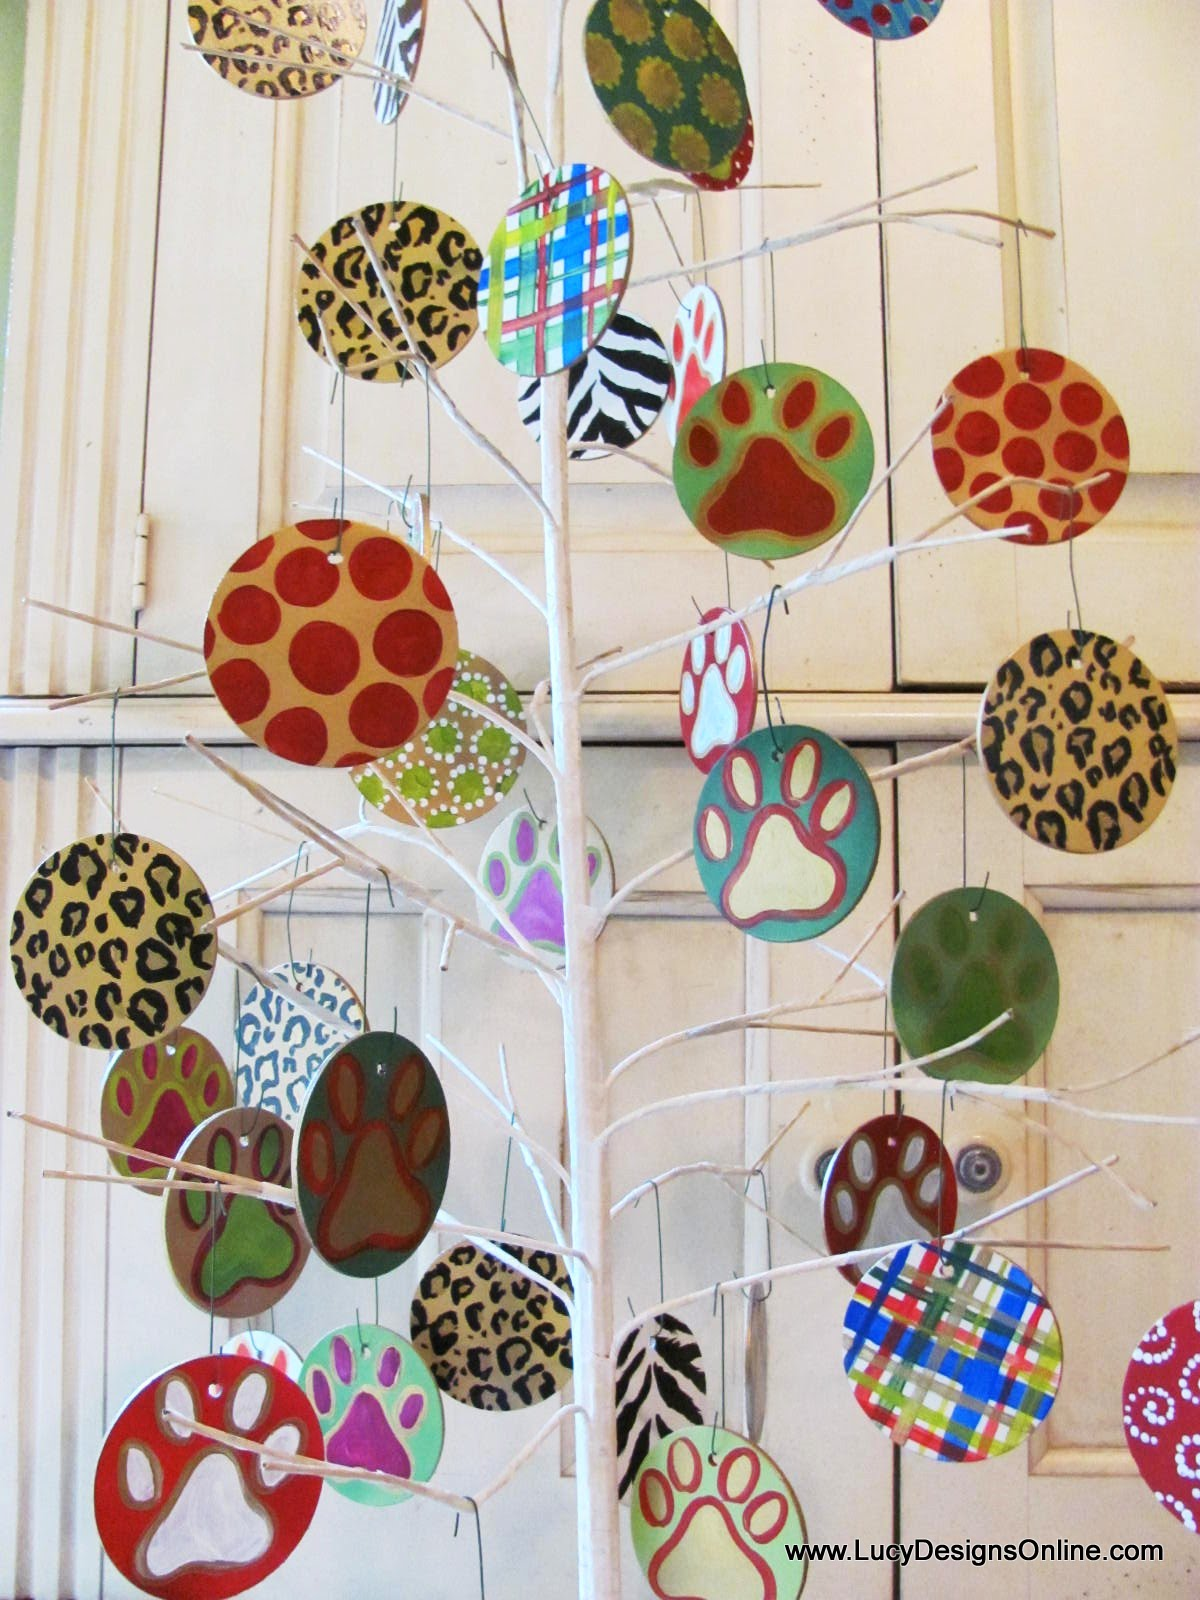 Hand Painted Wooden Christmas Ornaments For Pet Shop With Paw Prints Animal Print Dots And Stripes